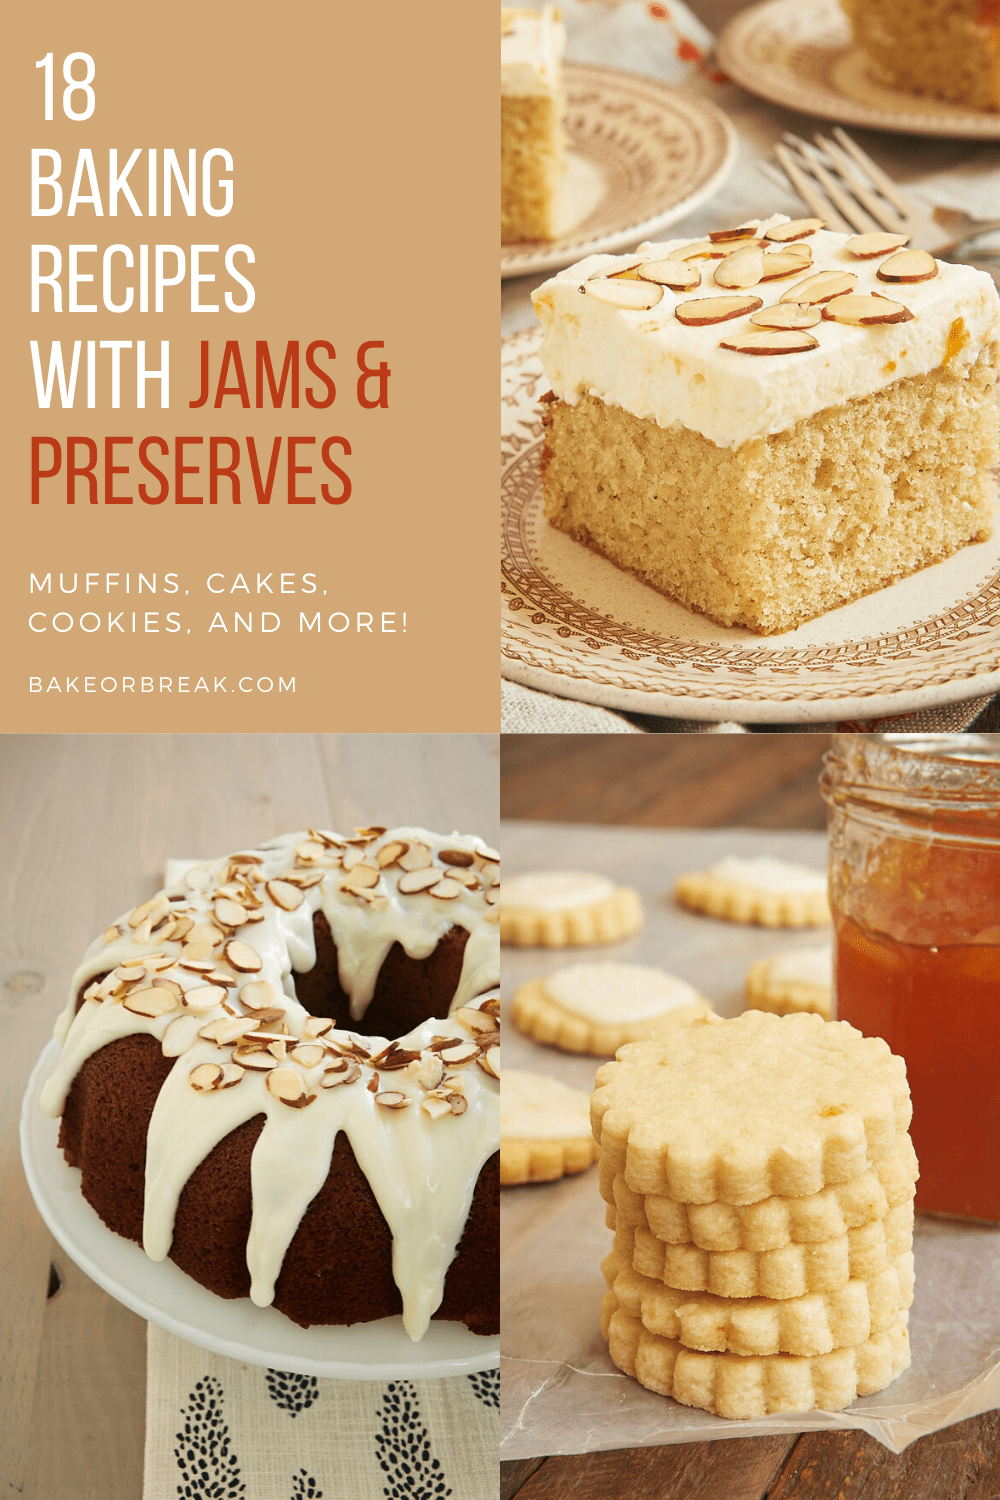 18 Baking Recipes Made with Jams and Preserves